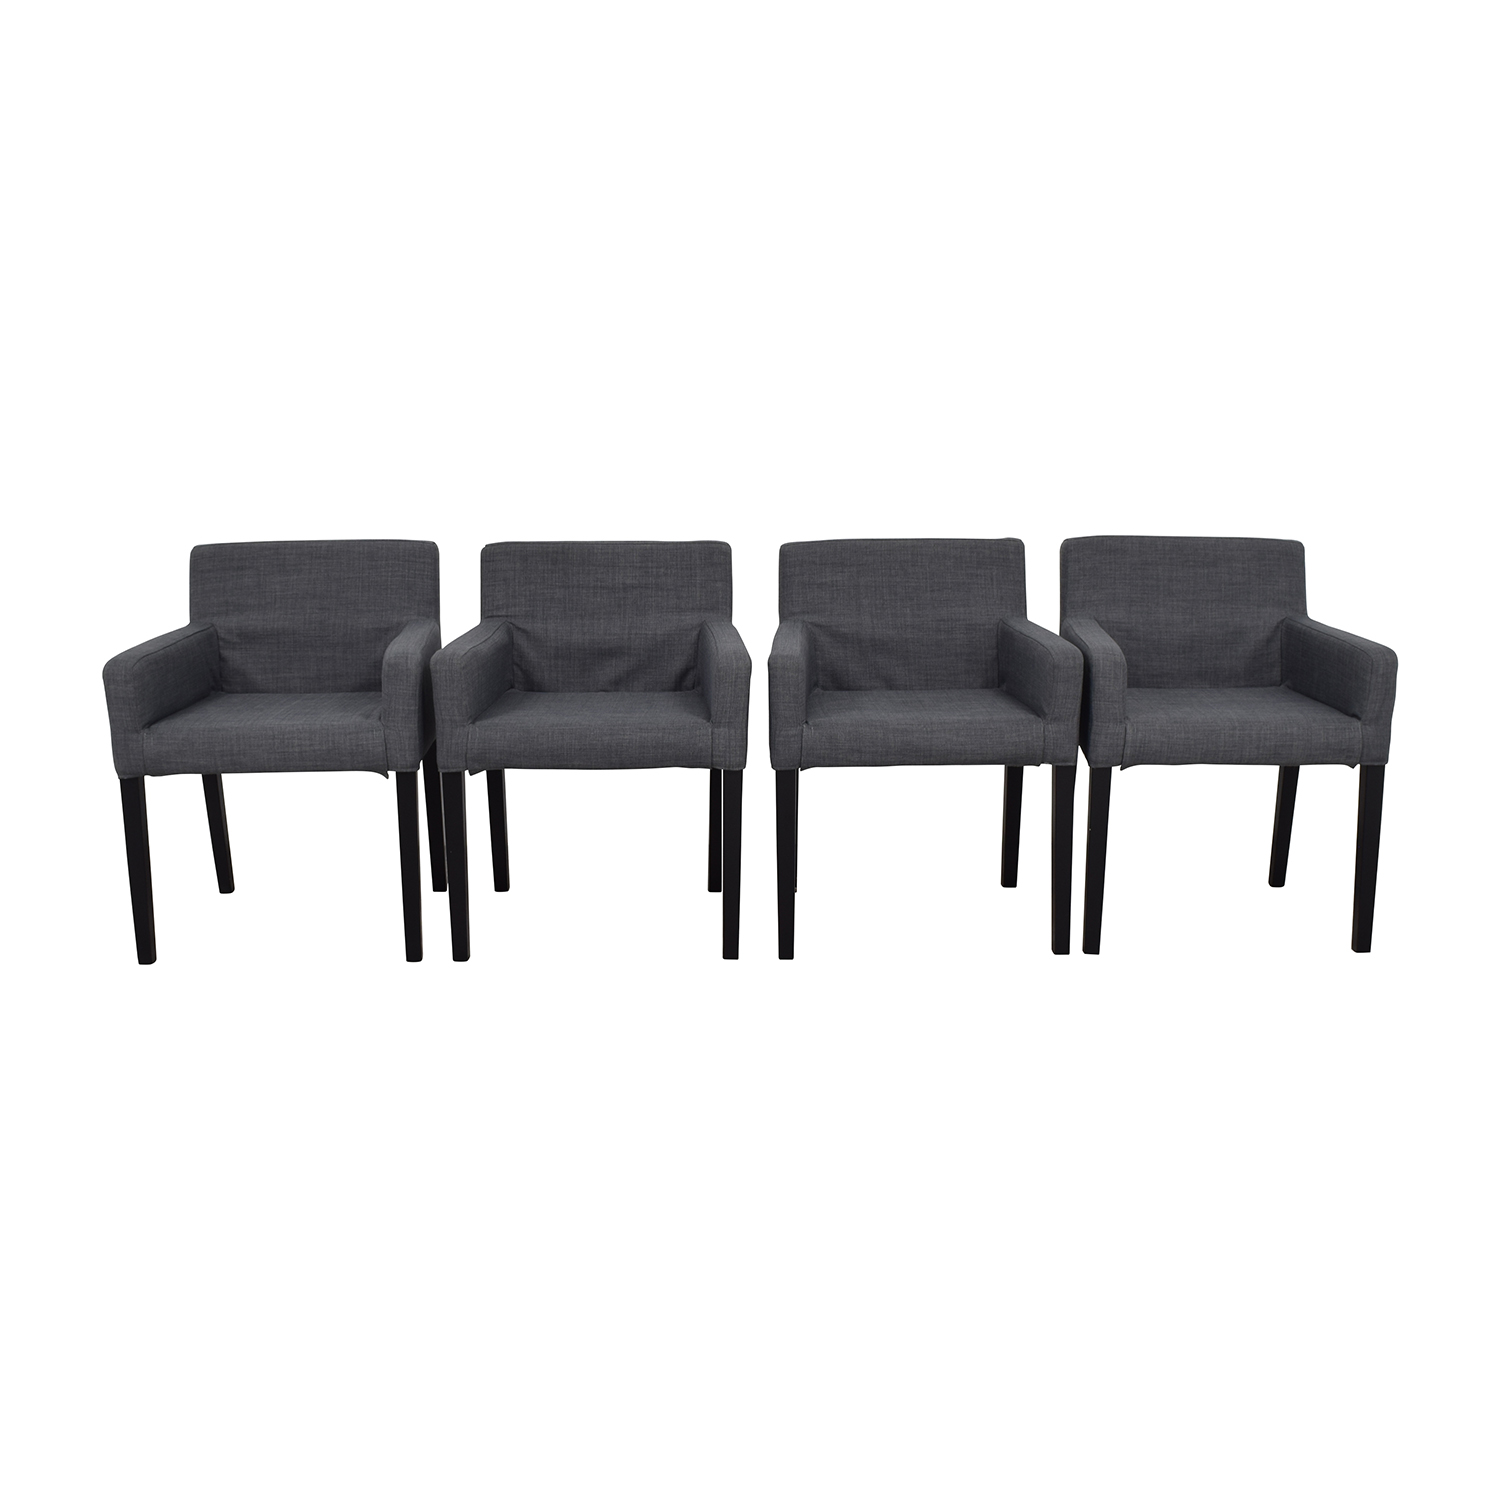 47% OFF - IKEA IKEA Nils Grey Fabric Dining Room Chairs / Chairs